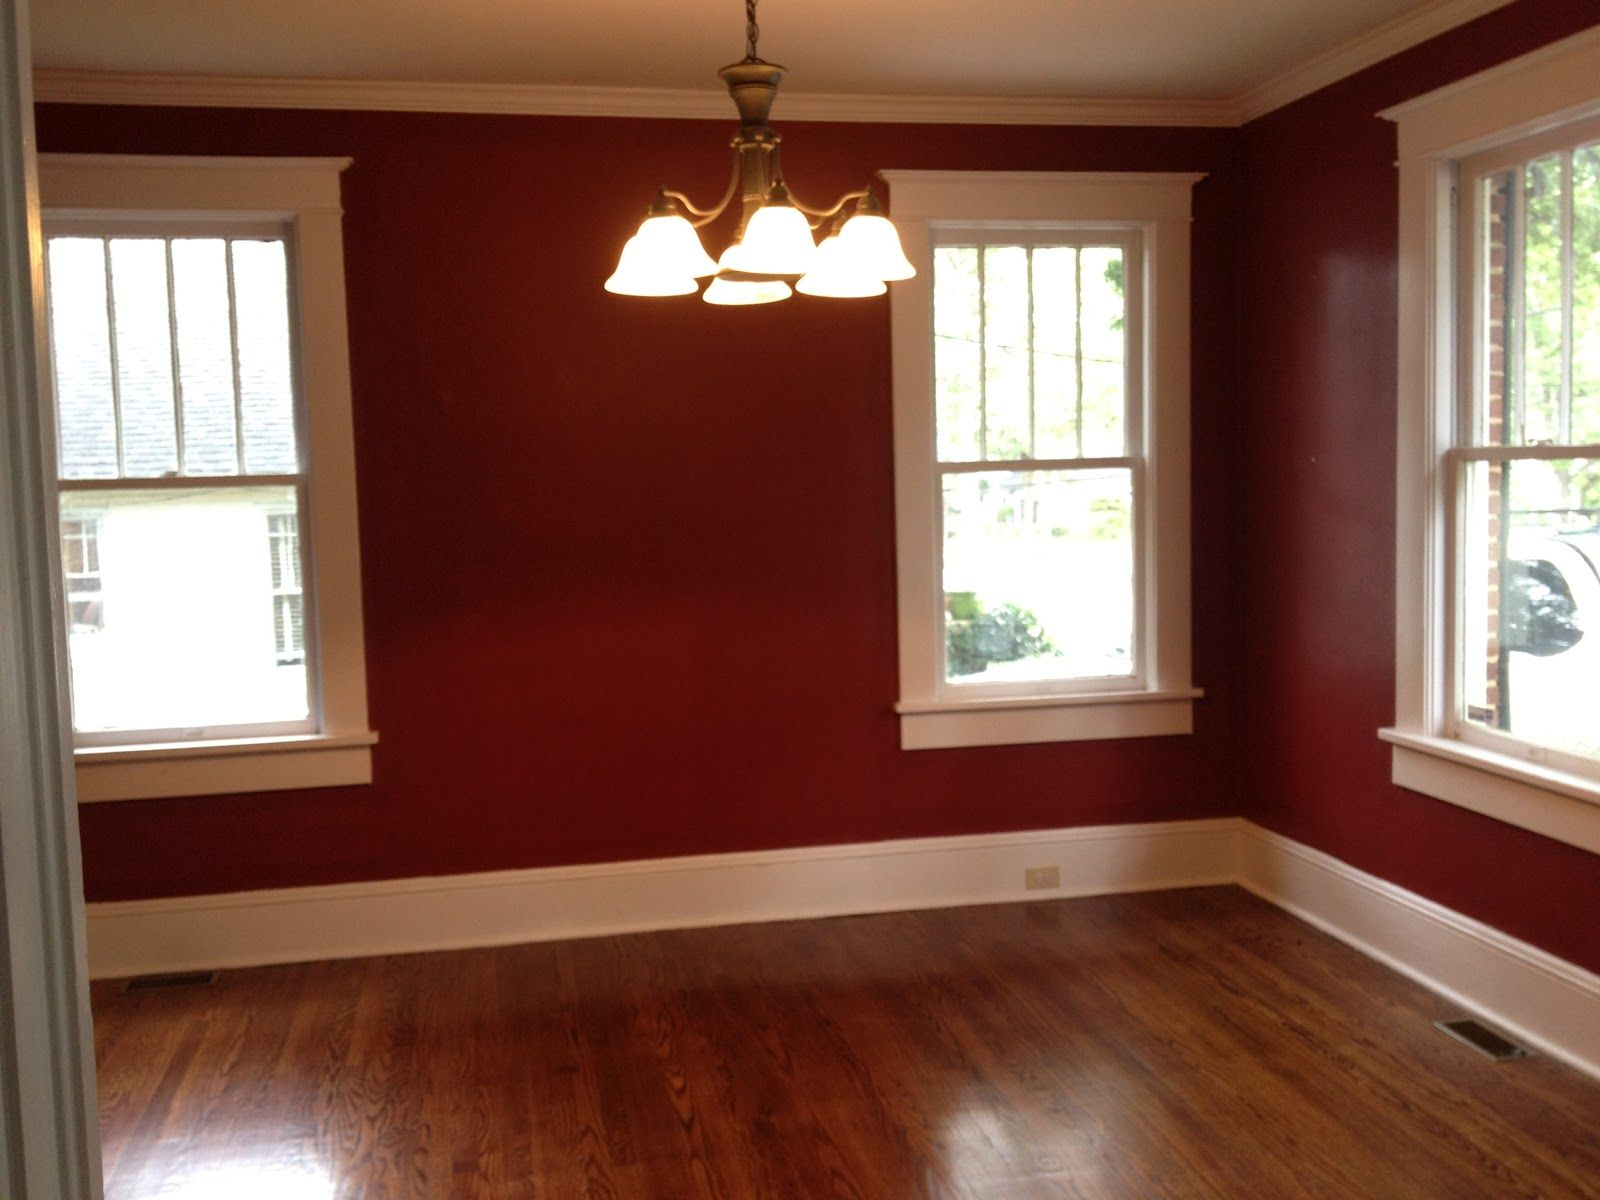 Red walls white trim dark floor houspiration for Red and brown walls